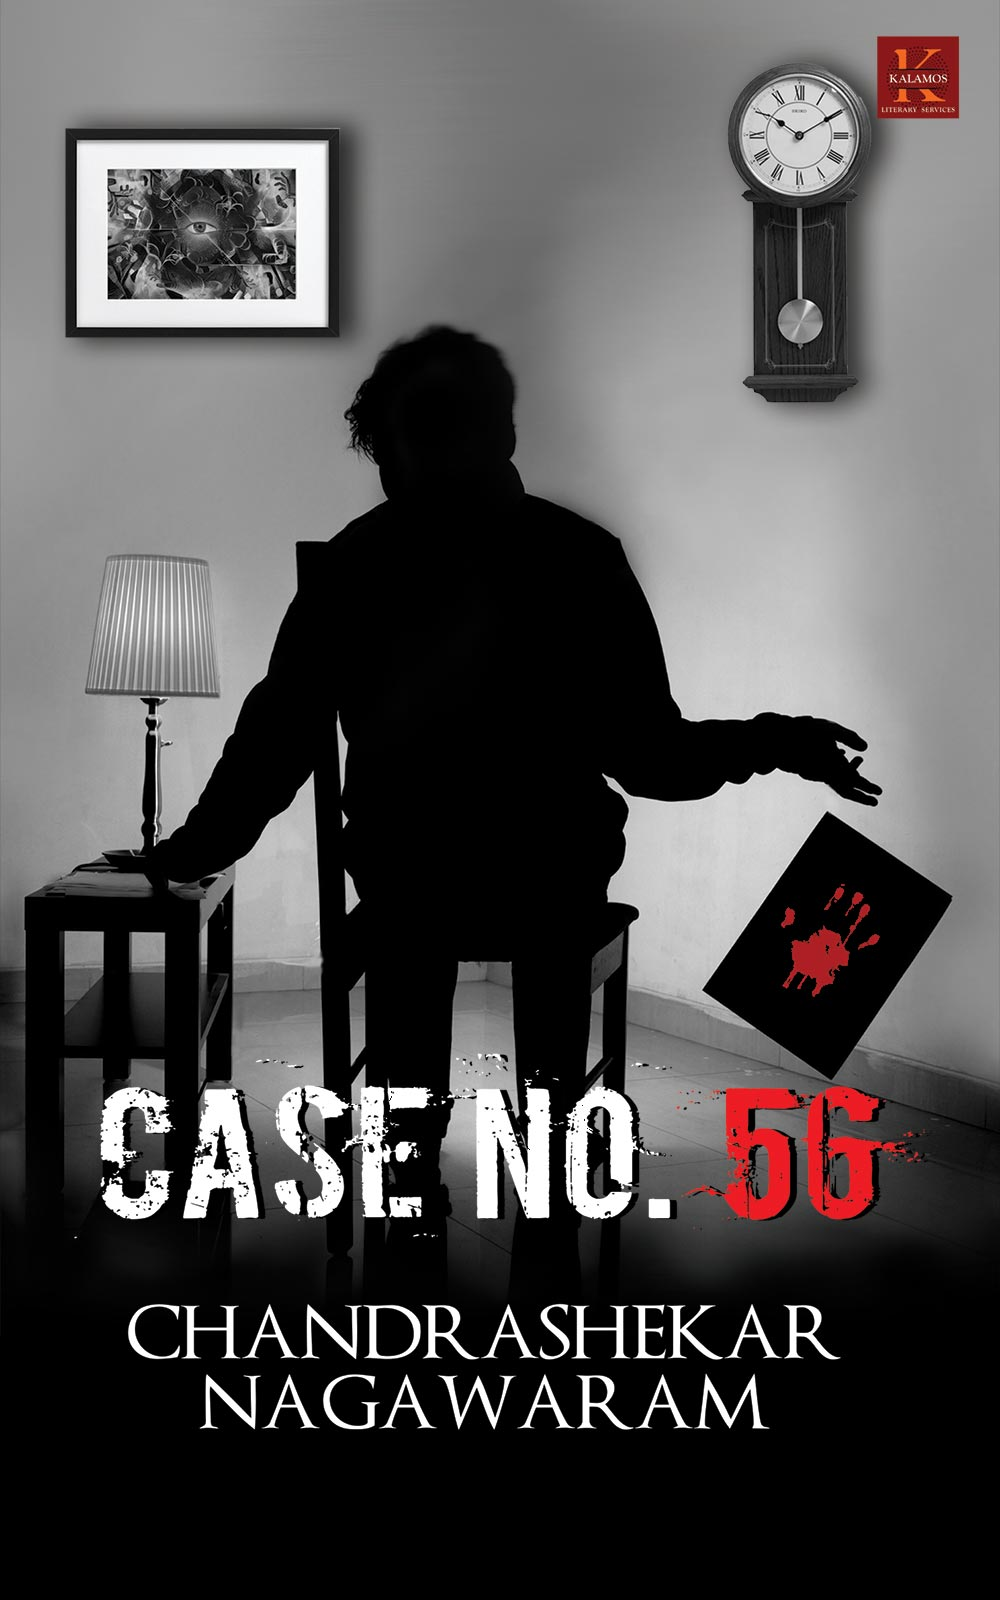 Case No. 56 By Chandrashekar Nagawaram